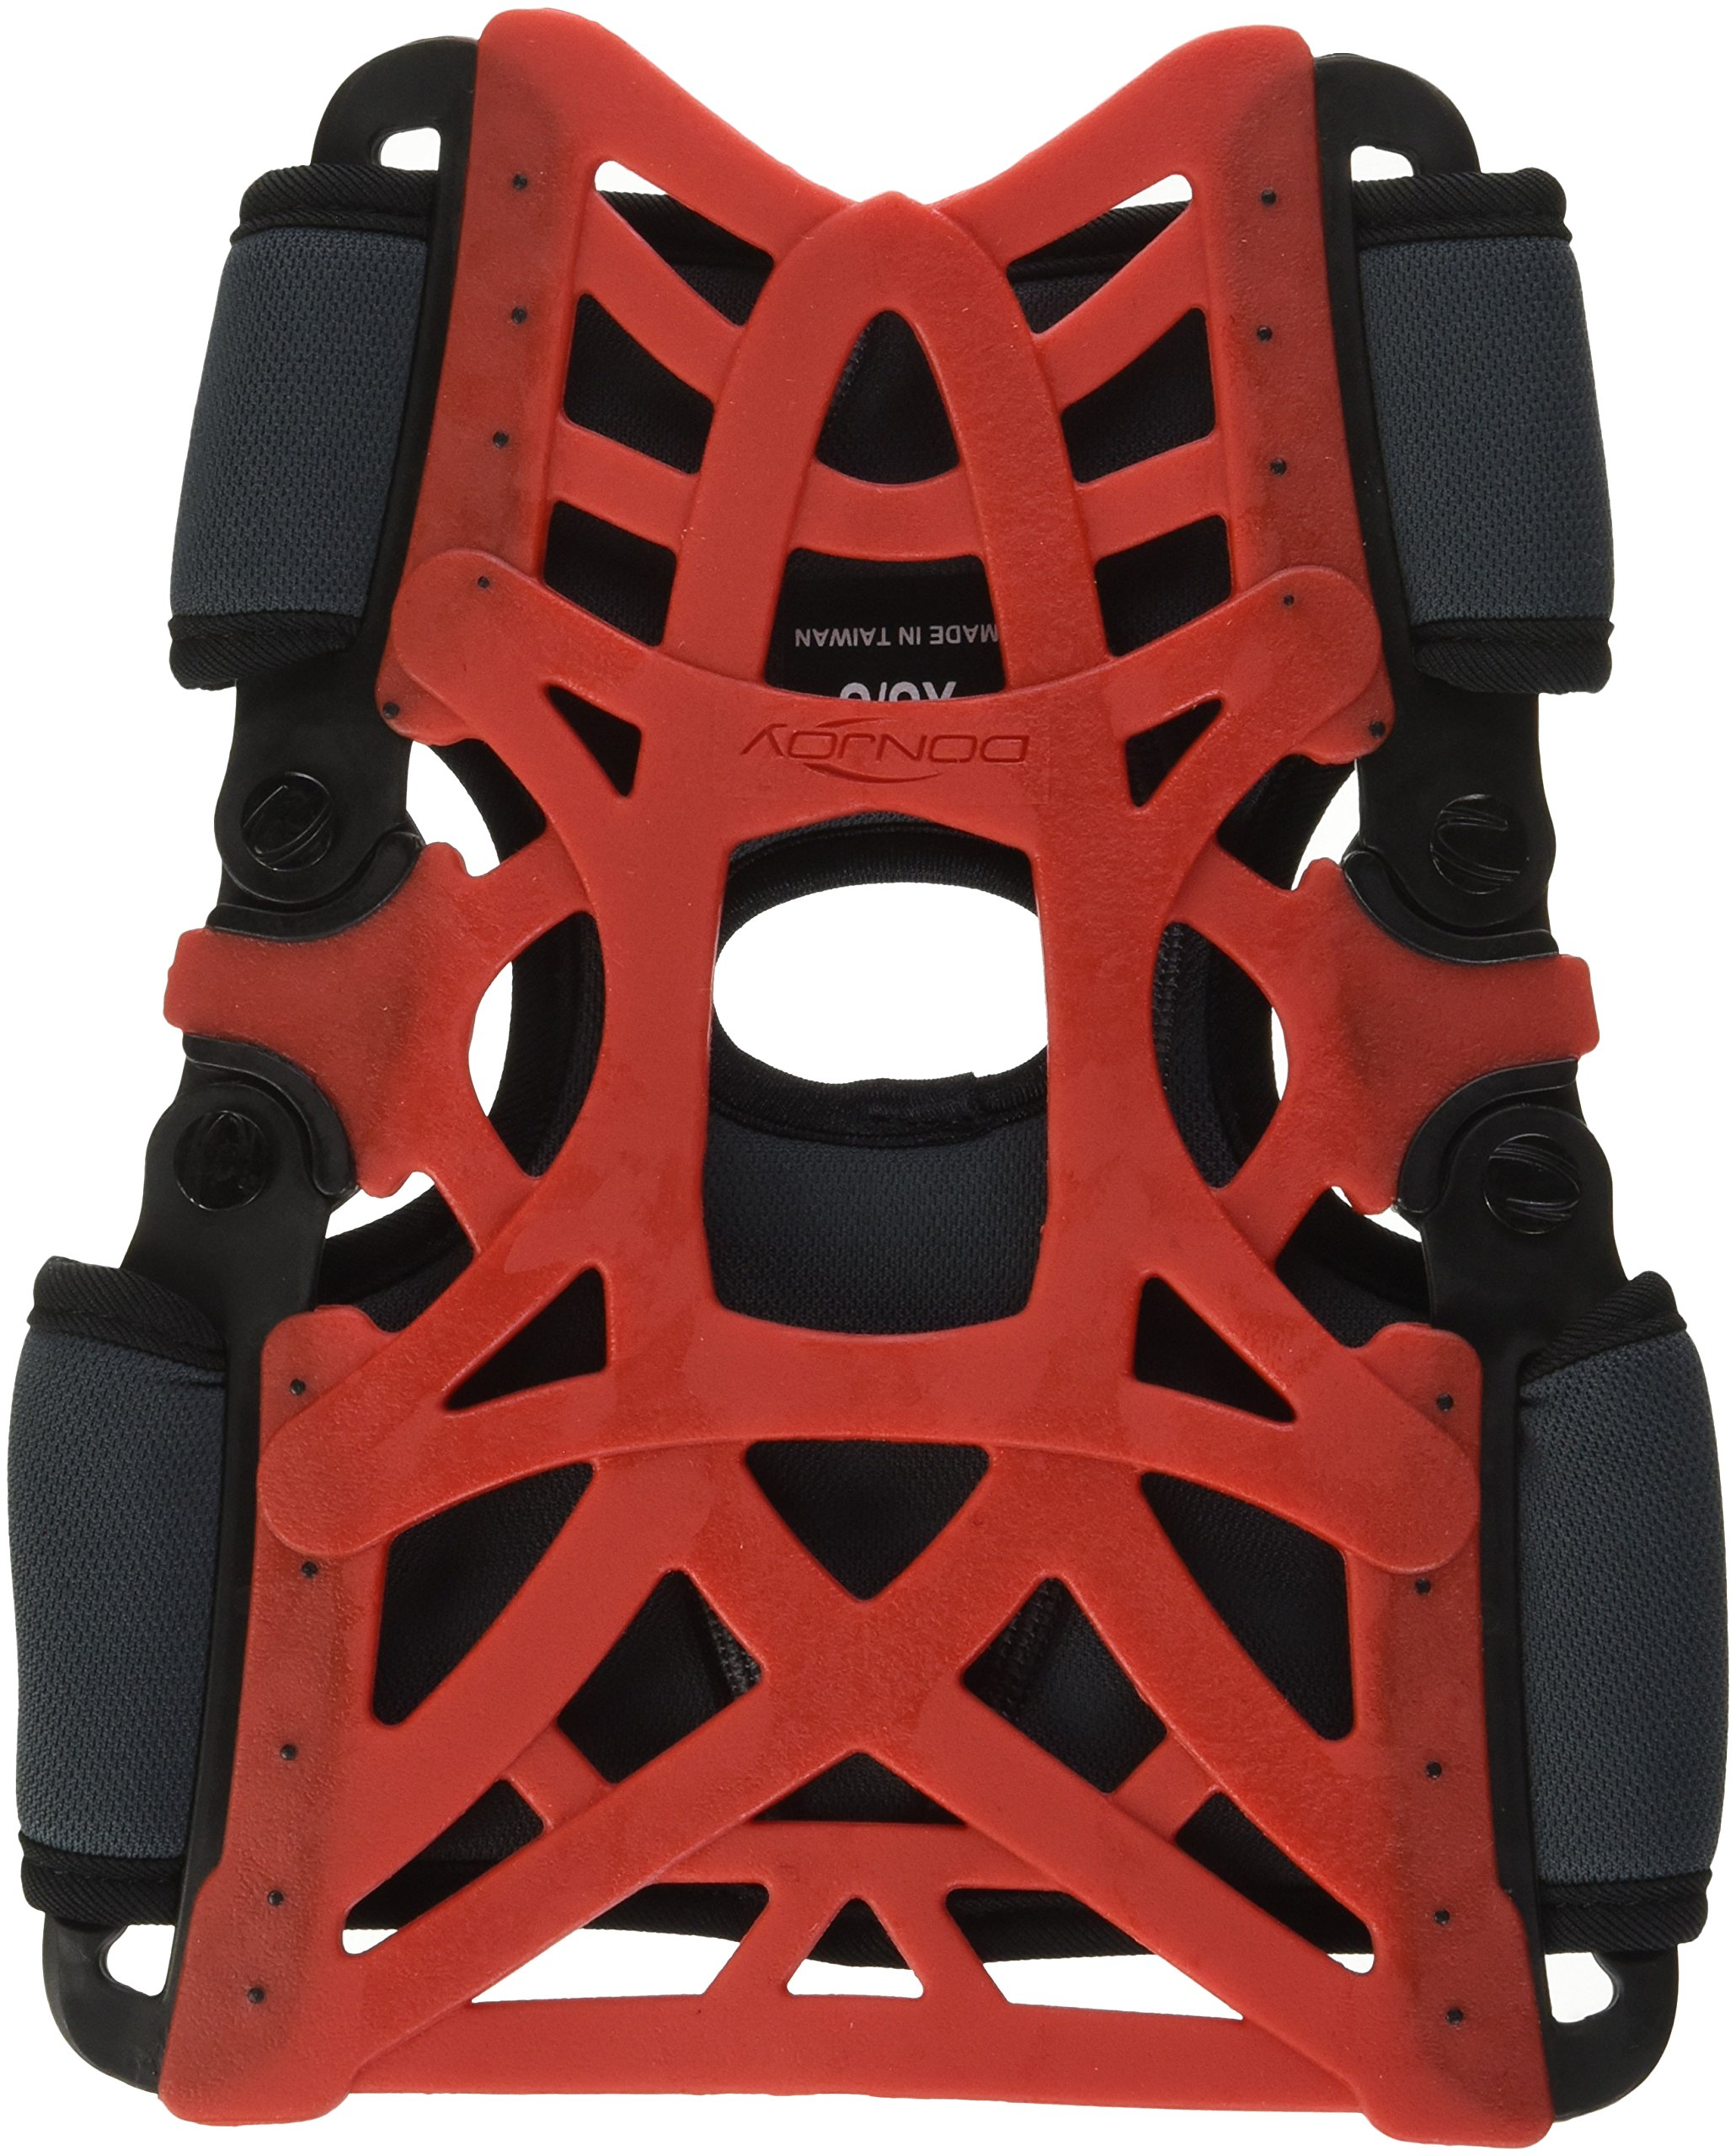 DonJoy Reaction Web Knee Support Brace with Compression Undersleeve: Red, X-Small/Small